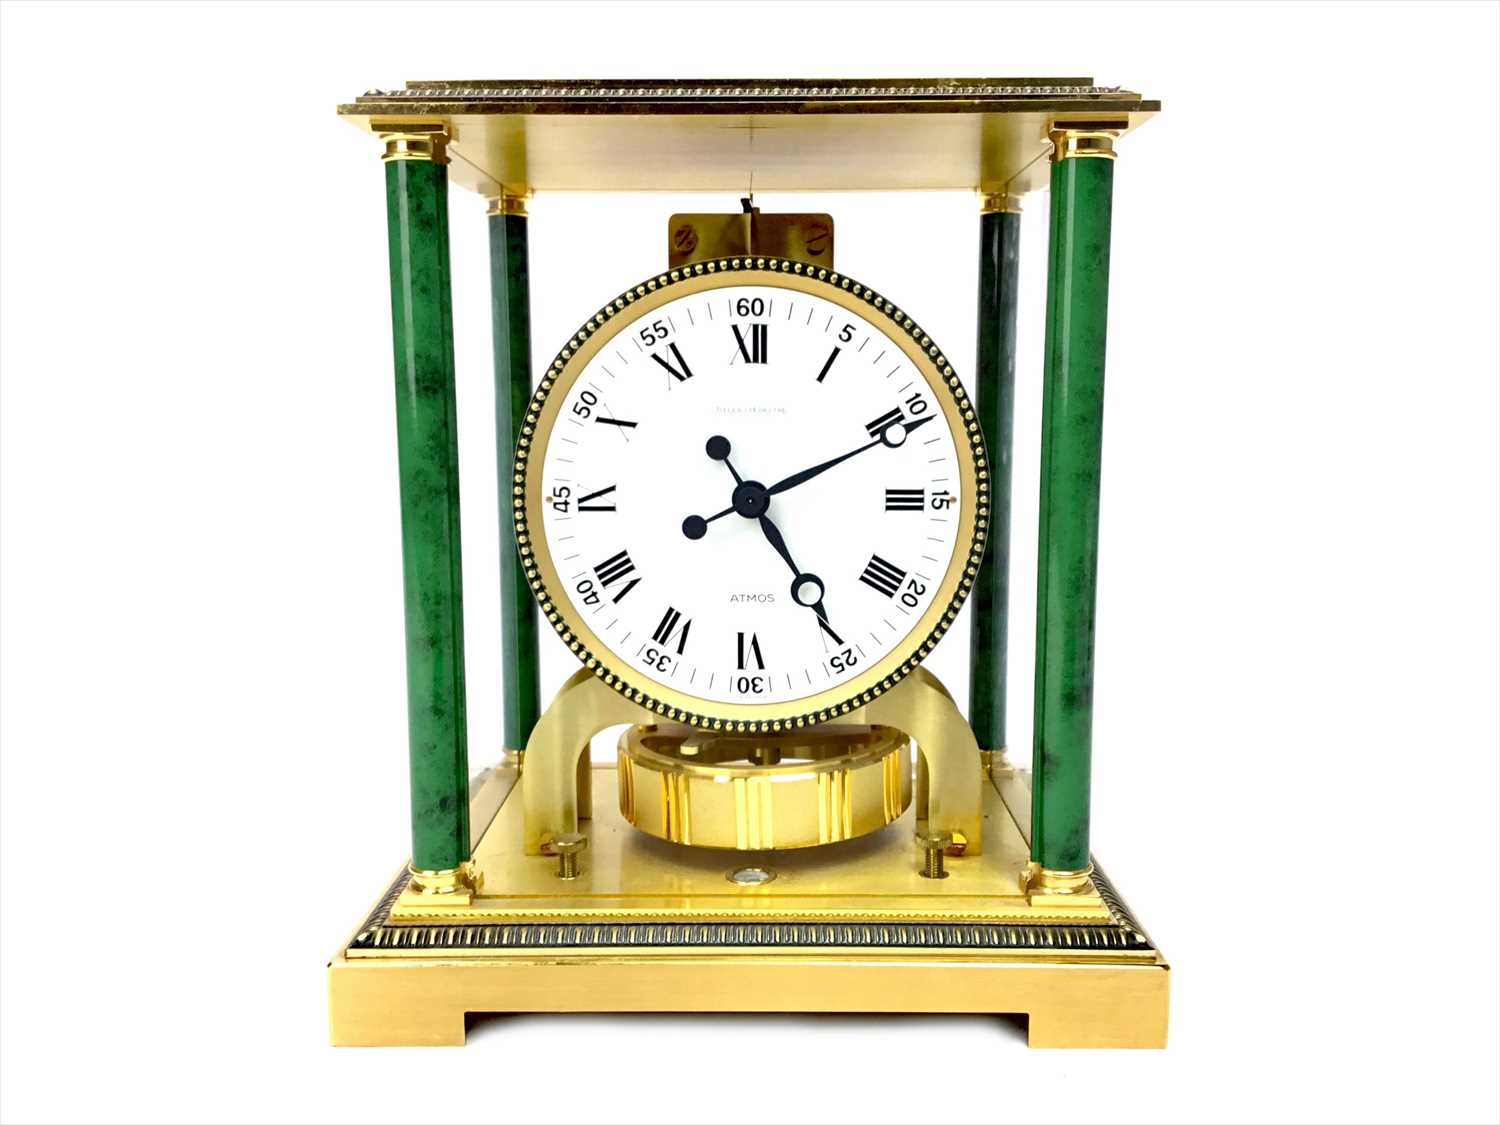 The Clocks, Scientific & Musical Instruments Auction